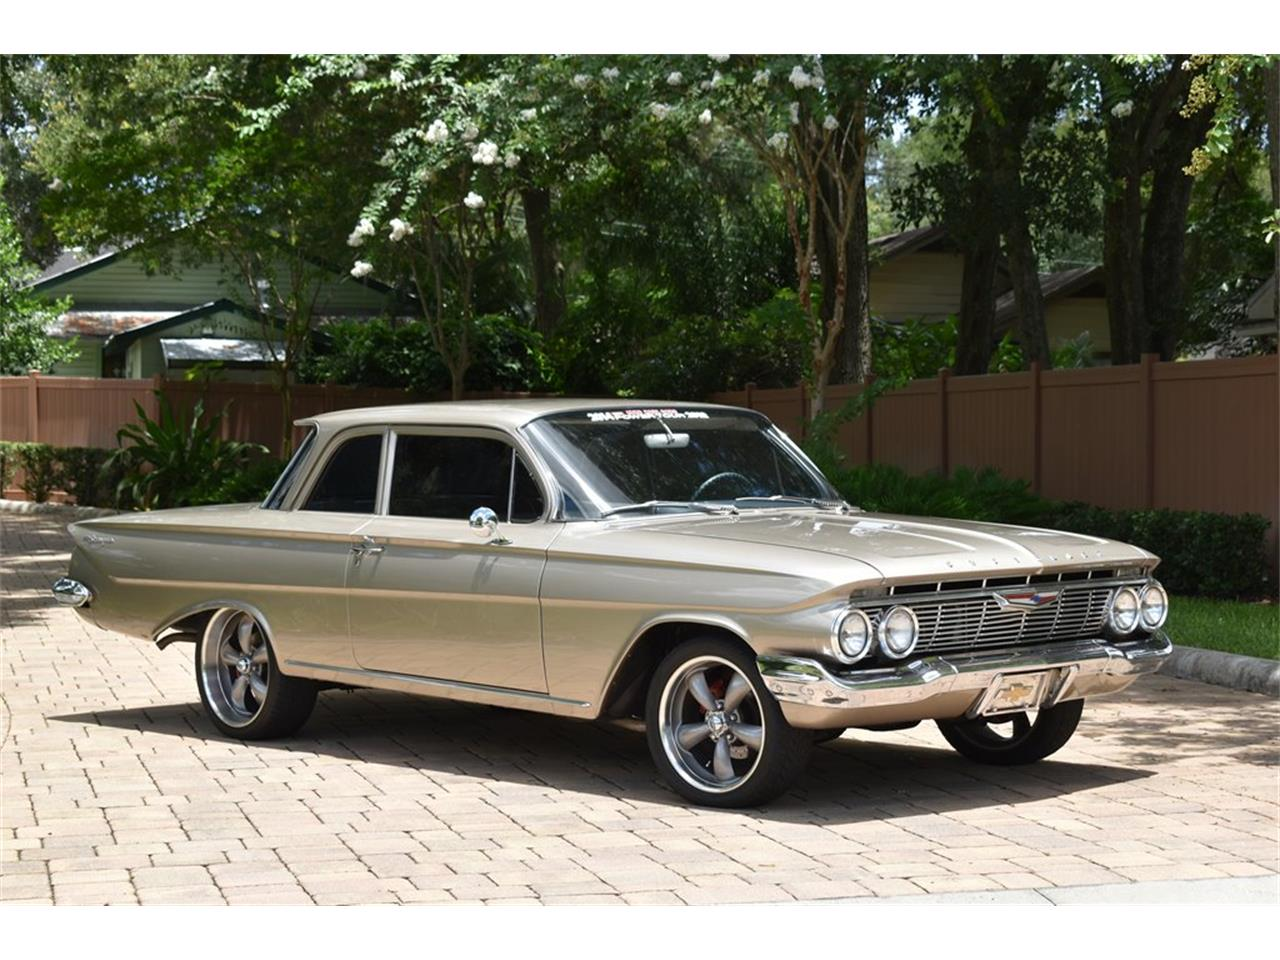 1961 Chevrolet Biscayne (CC-1367765) for sale in Lakeland, Florida